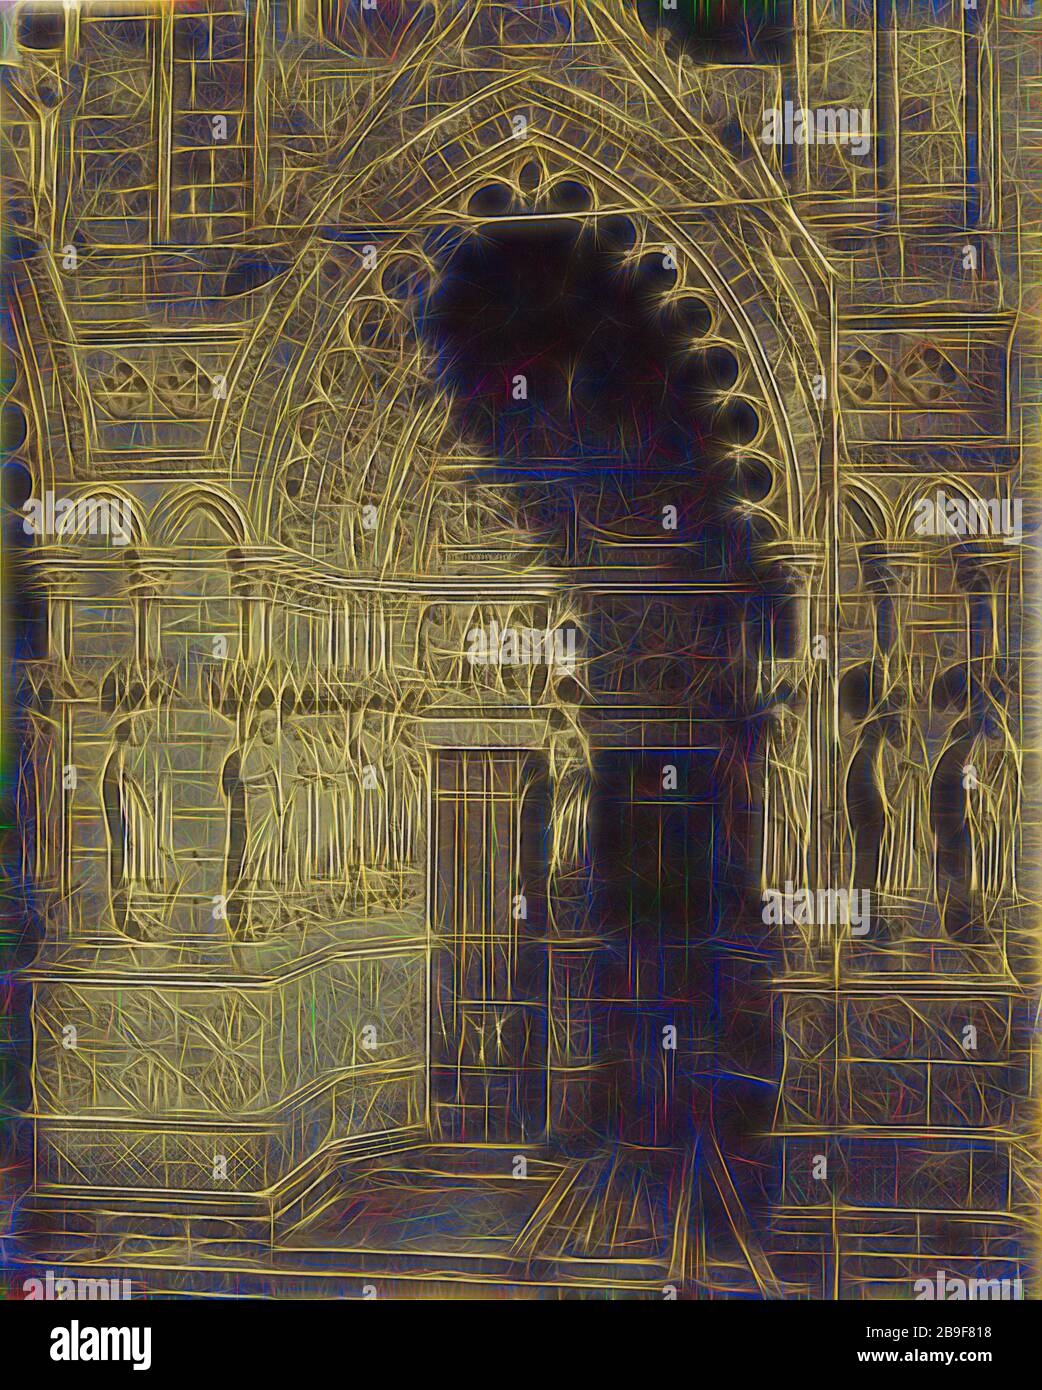 https www alamy com cathedrale damiens portail principal porte de la vierge bisson frres french active 1840 1864 amiens france 1850s albumen silver print from a glass negative 456 366 cm 17 1516 14 716 in reimagined by gibon design of warm cheerful glowing of brightness and light rays radiance classic art reinvented with a modern twist photography inspired by futurism embracing dynamic energy of modern technology movement speed and revolutionize culture image350074852 html